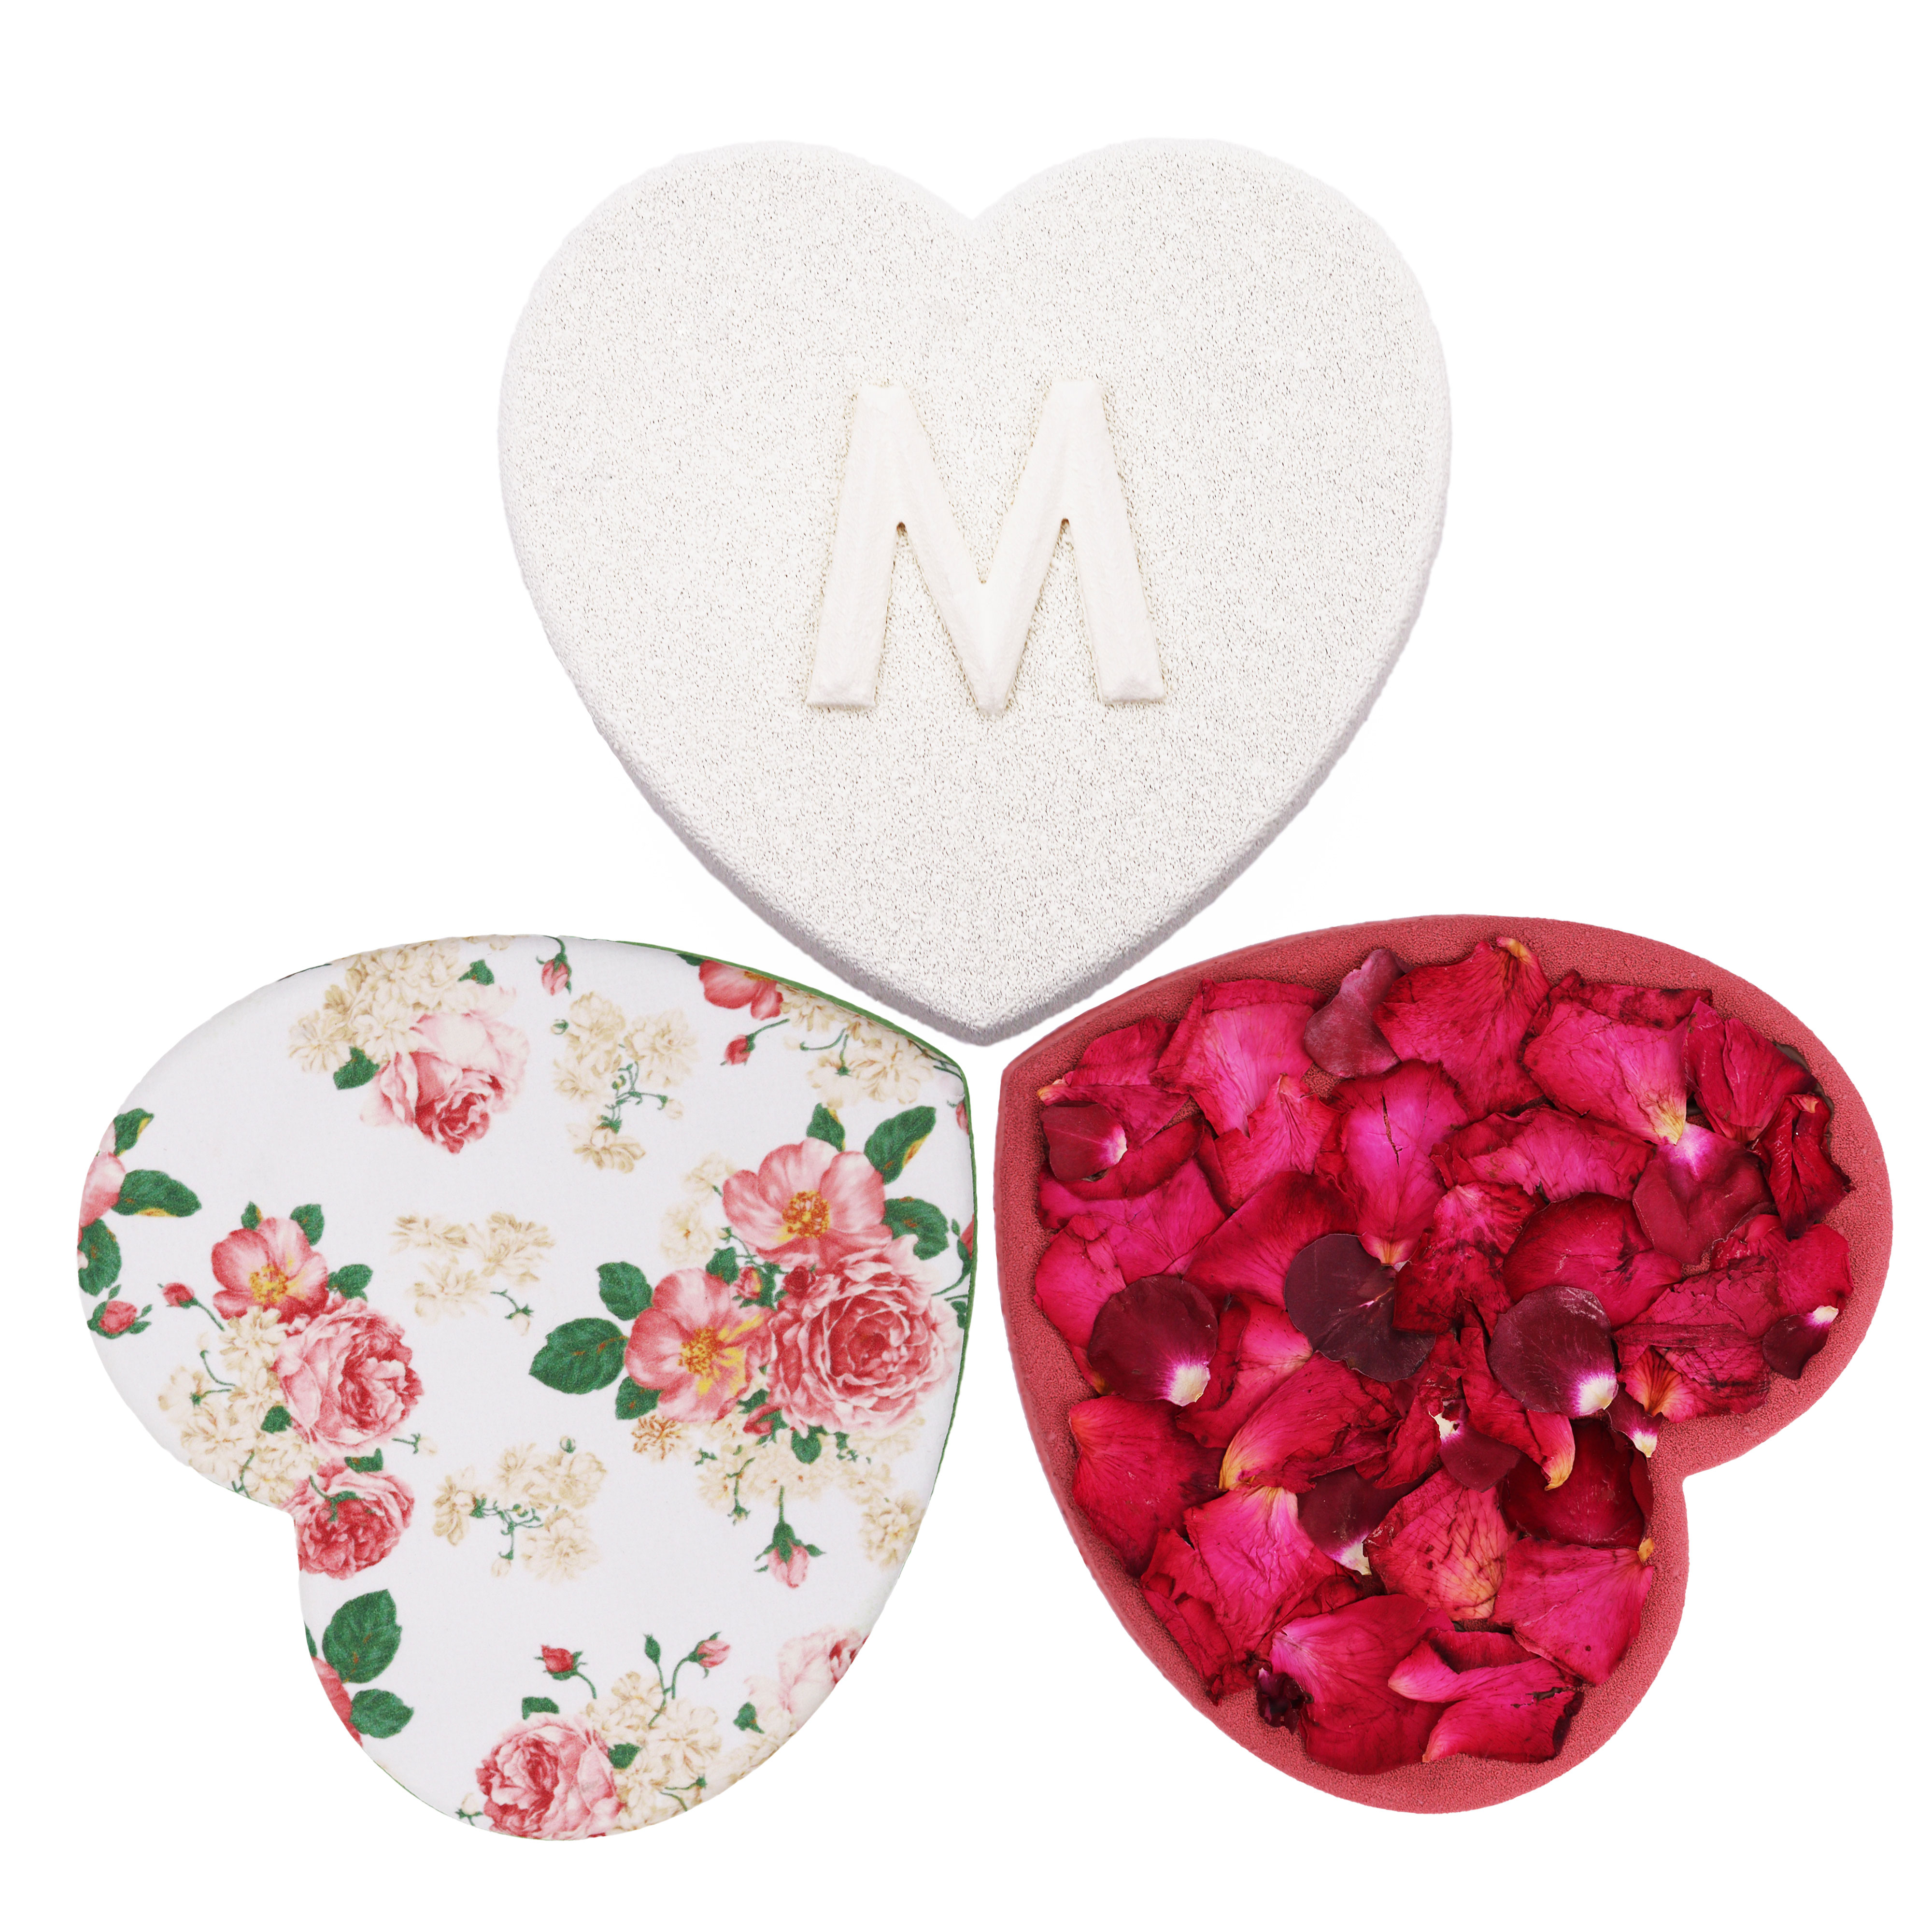 The Josephine Heart Mother's Day Gifts for the Foodie in Your Life - Chef Chris Ford of Butter Love & Handwork and the Four Seasons Beverly Hills launched a trio of edible floral creations just in time for Mother's Day. Handmade with breakable chocolate, these heart-shaped sweets are adorned with dried rose petals and floral-printed paper, and are dusted white chocolate.